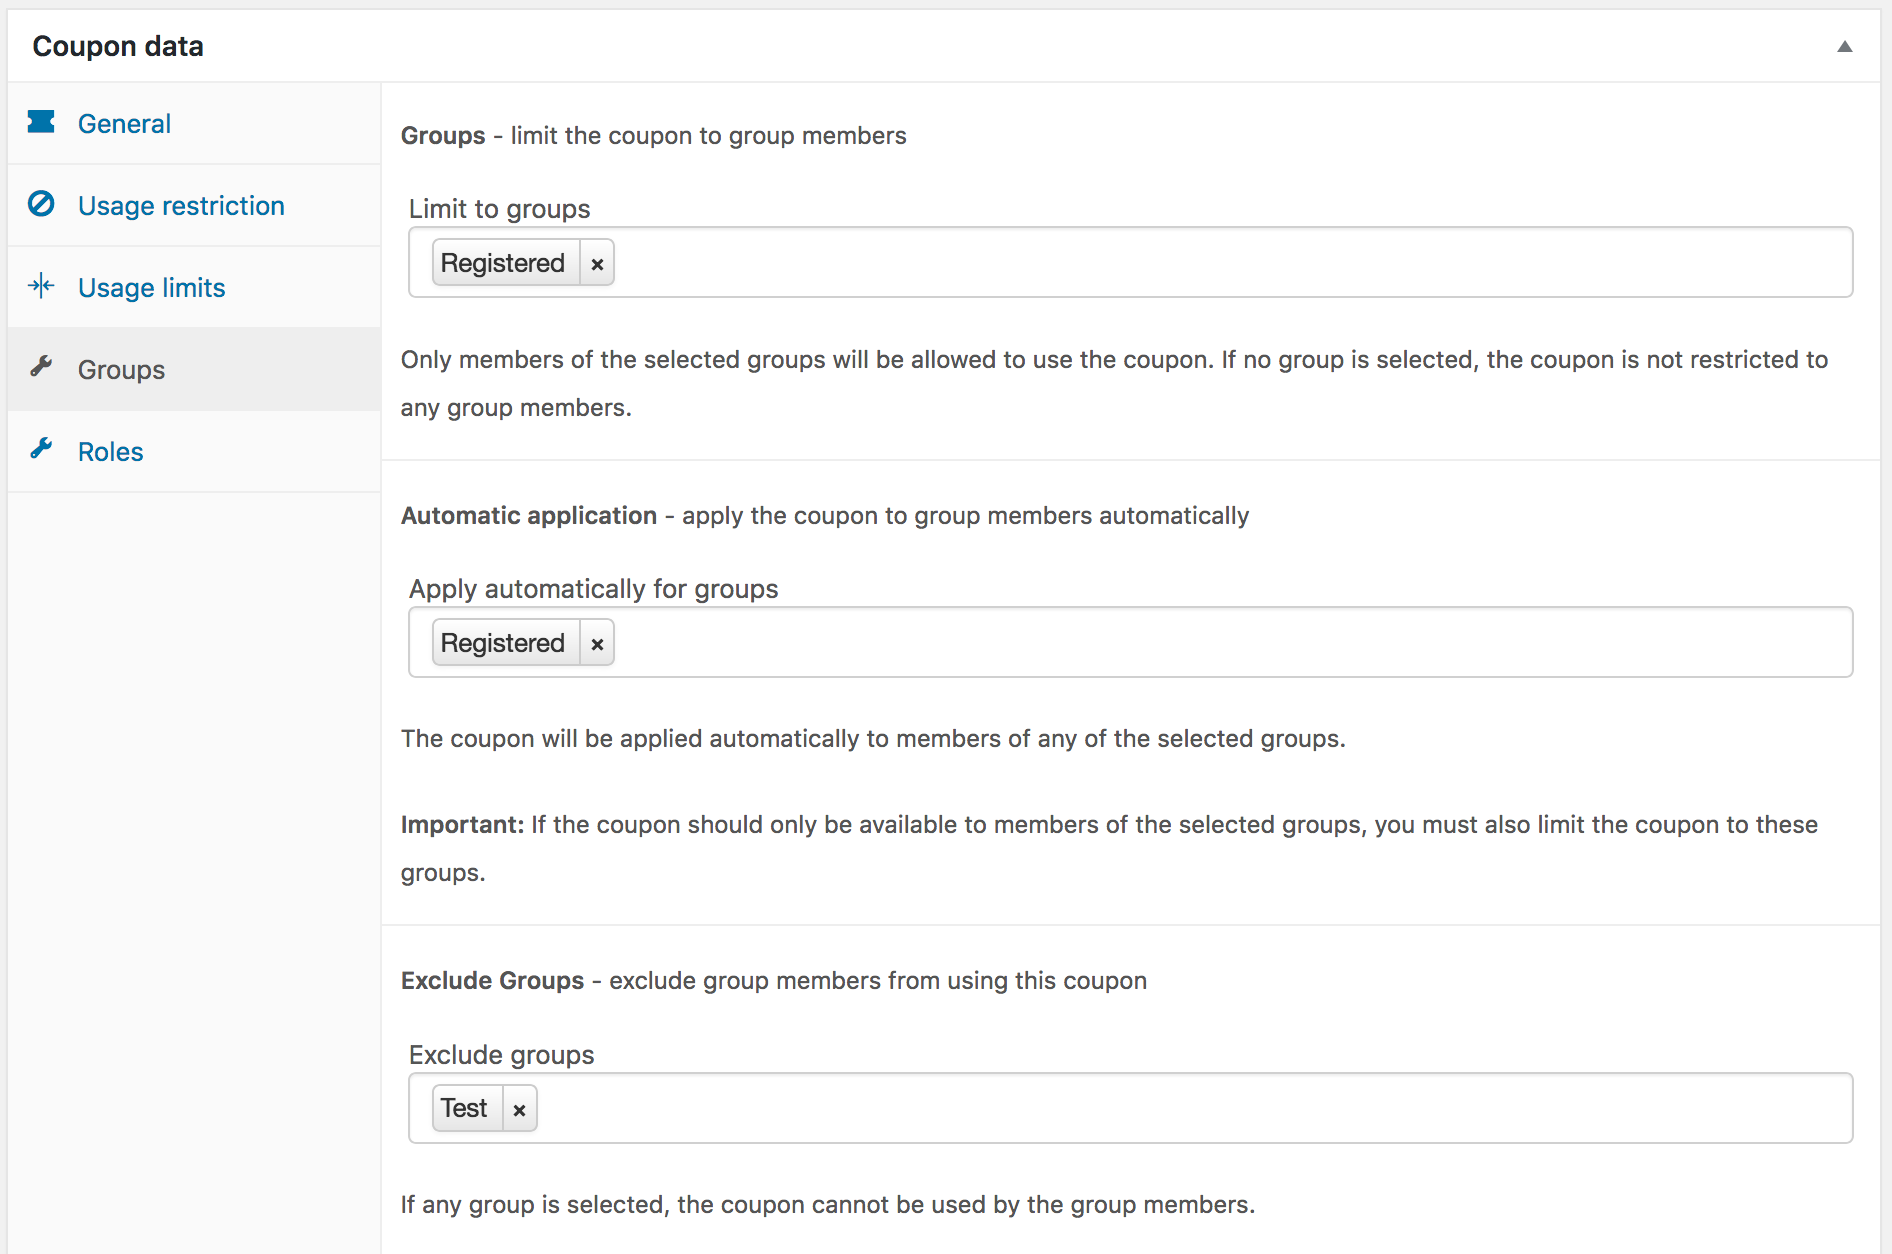 Settings for a Registered group Coupon excluding Test group